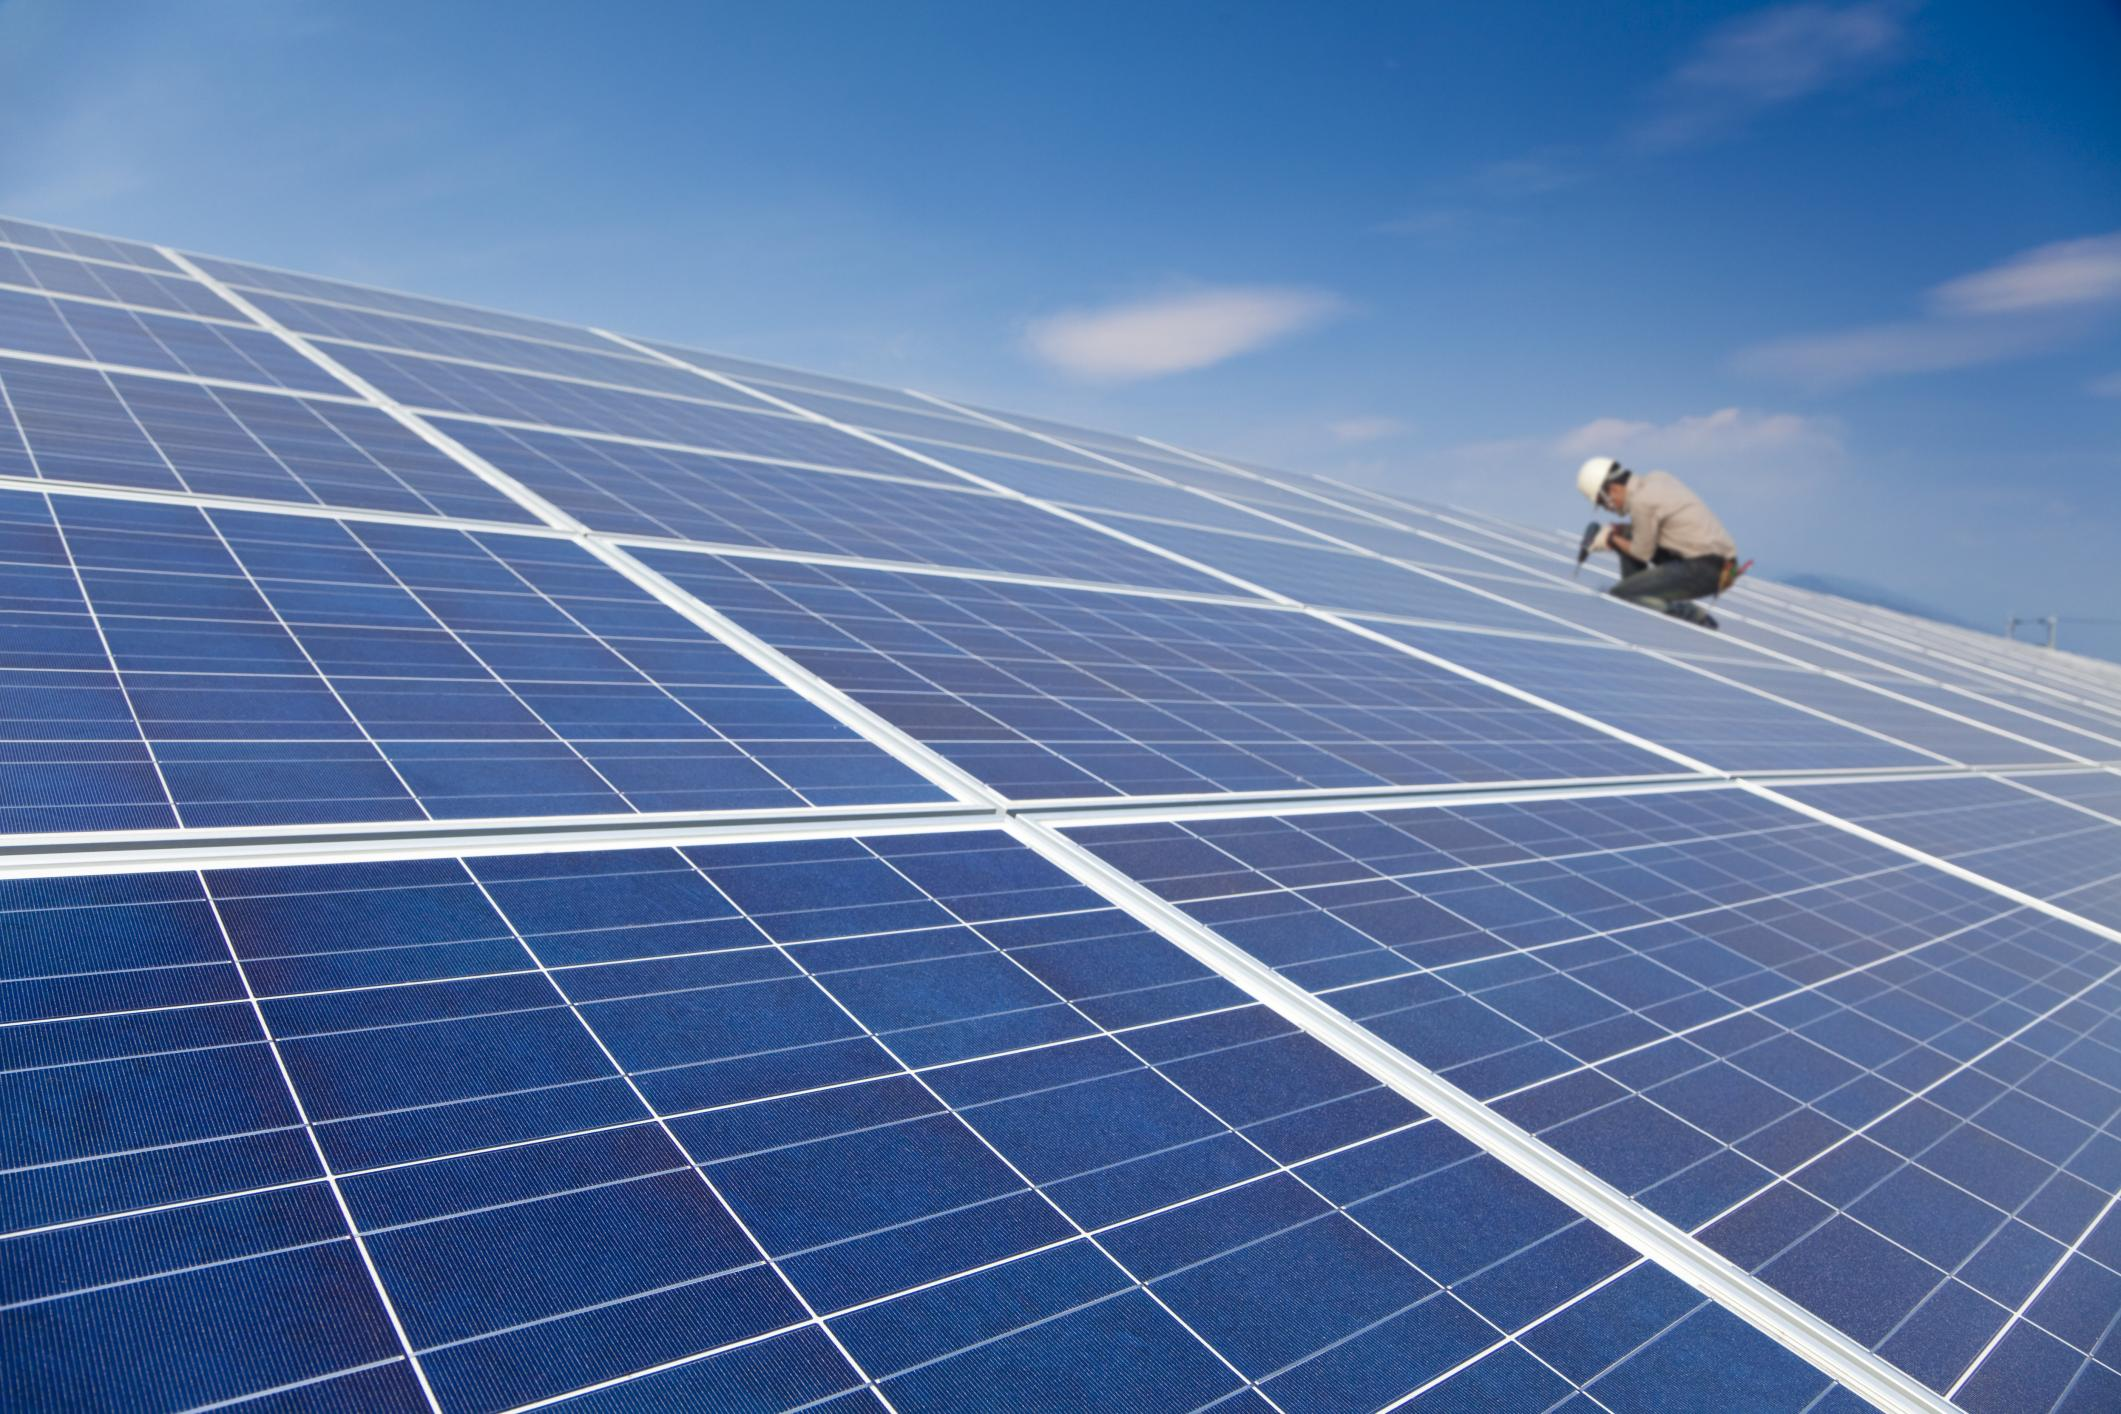 Worker on a solar panel